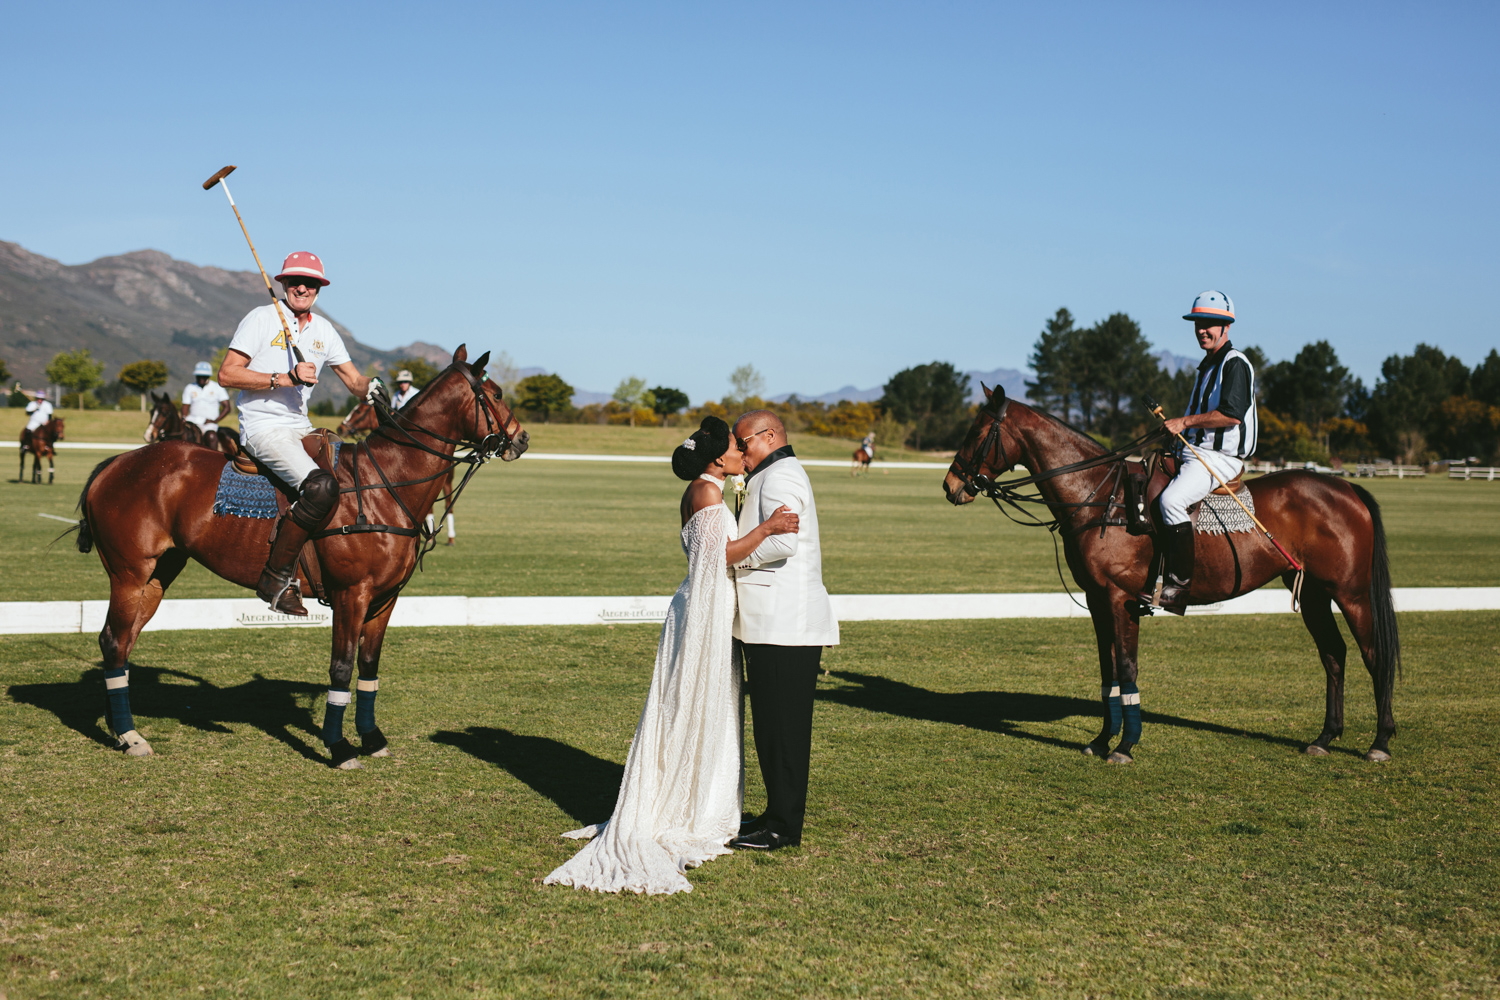 an Image taken by Vividblue of the groom and bride standing next to a polo match at Val de Vie and kissing.